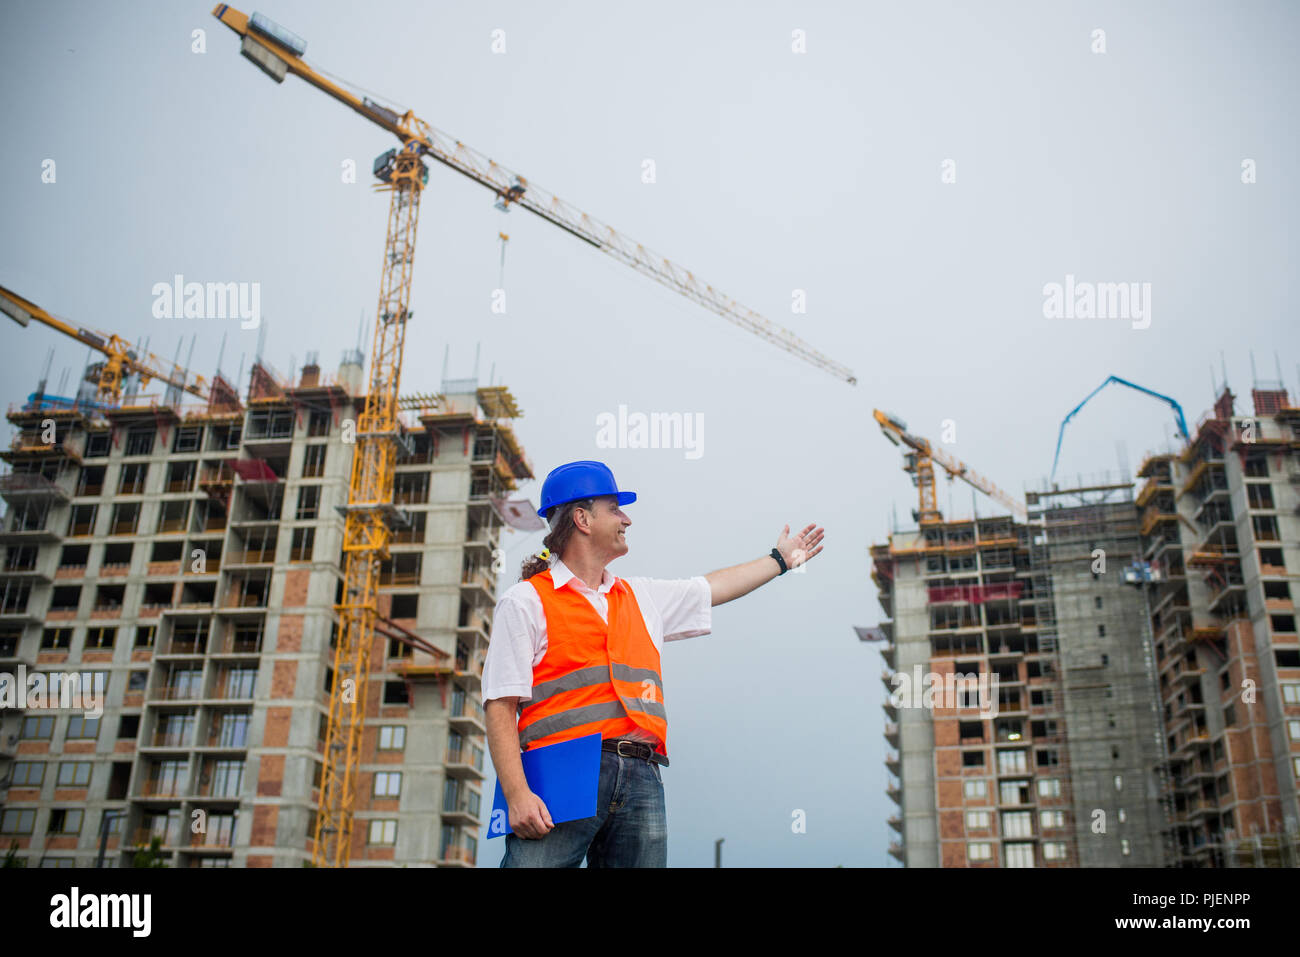 Architect showing buildings on a construction site during a housing project - Stock Image